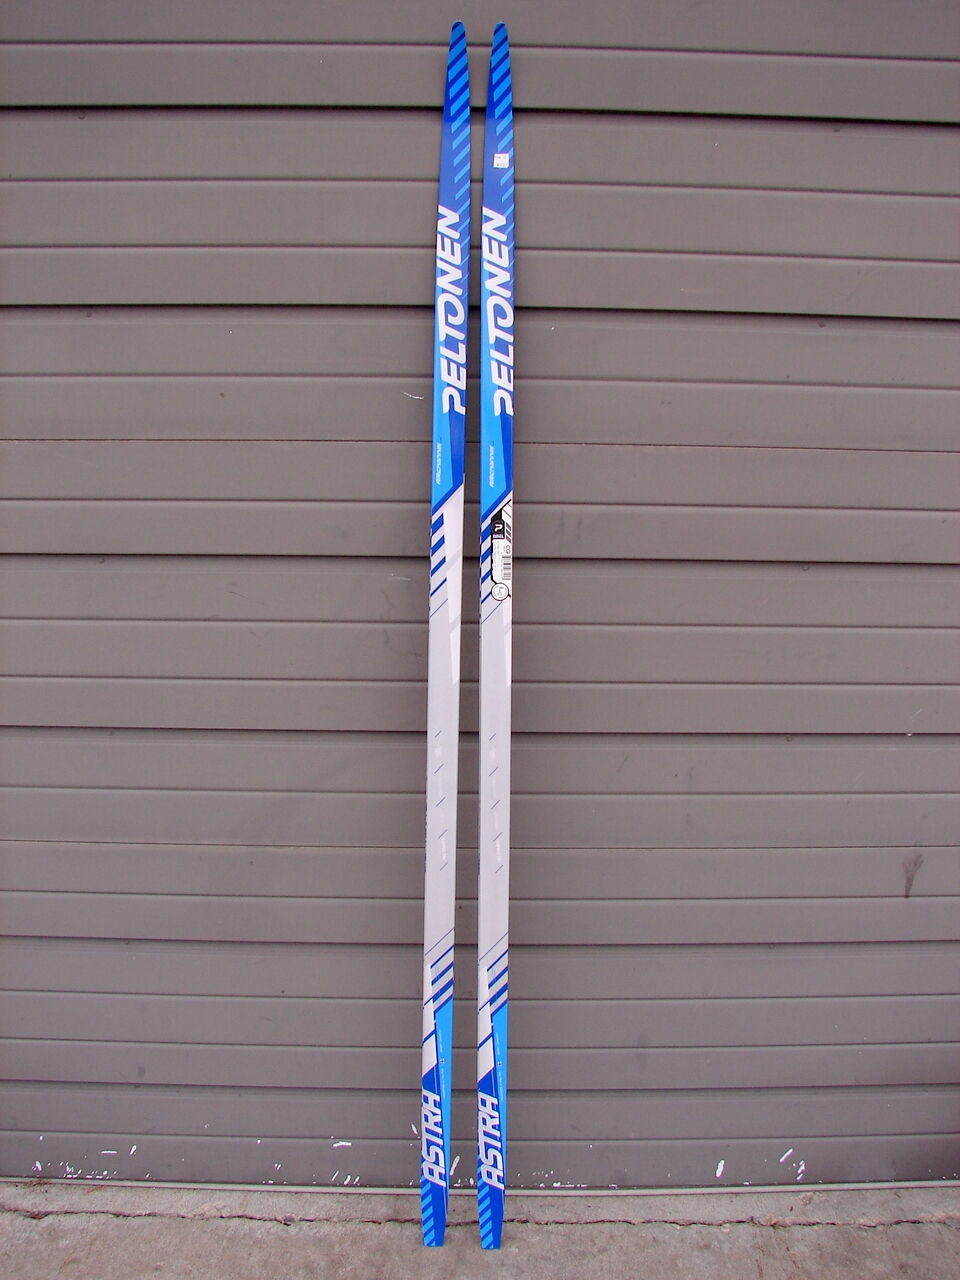 New Peltonen ASTRA CAP Classic  Sport Concept Cross Country XC Skis 209cm  up to 65% off